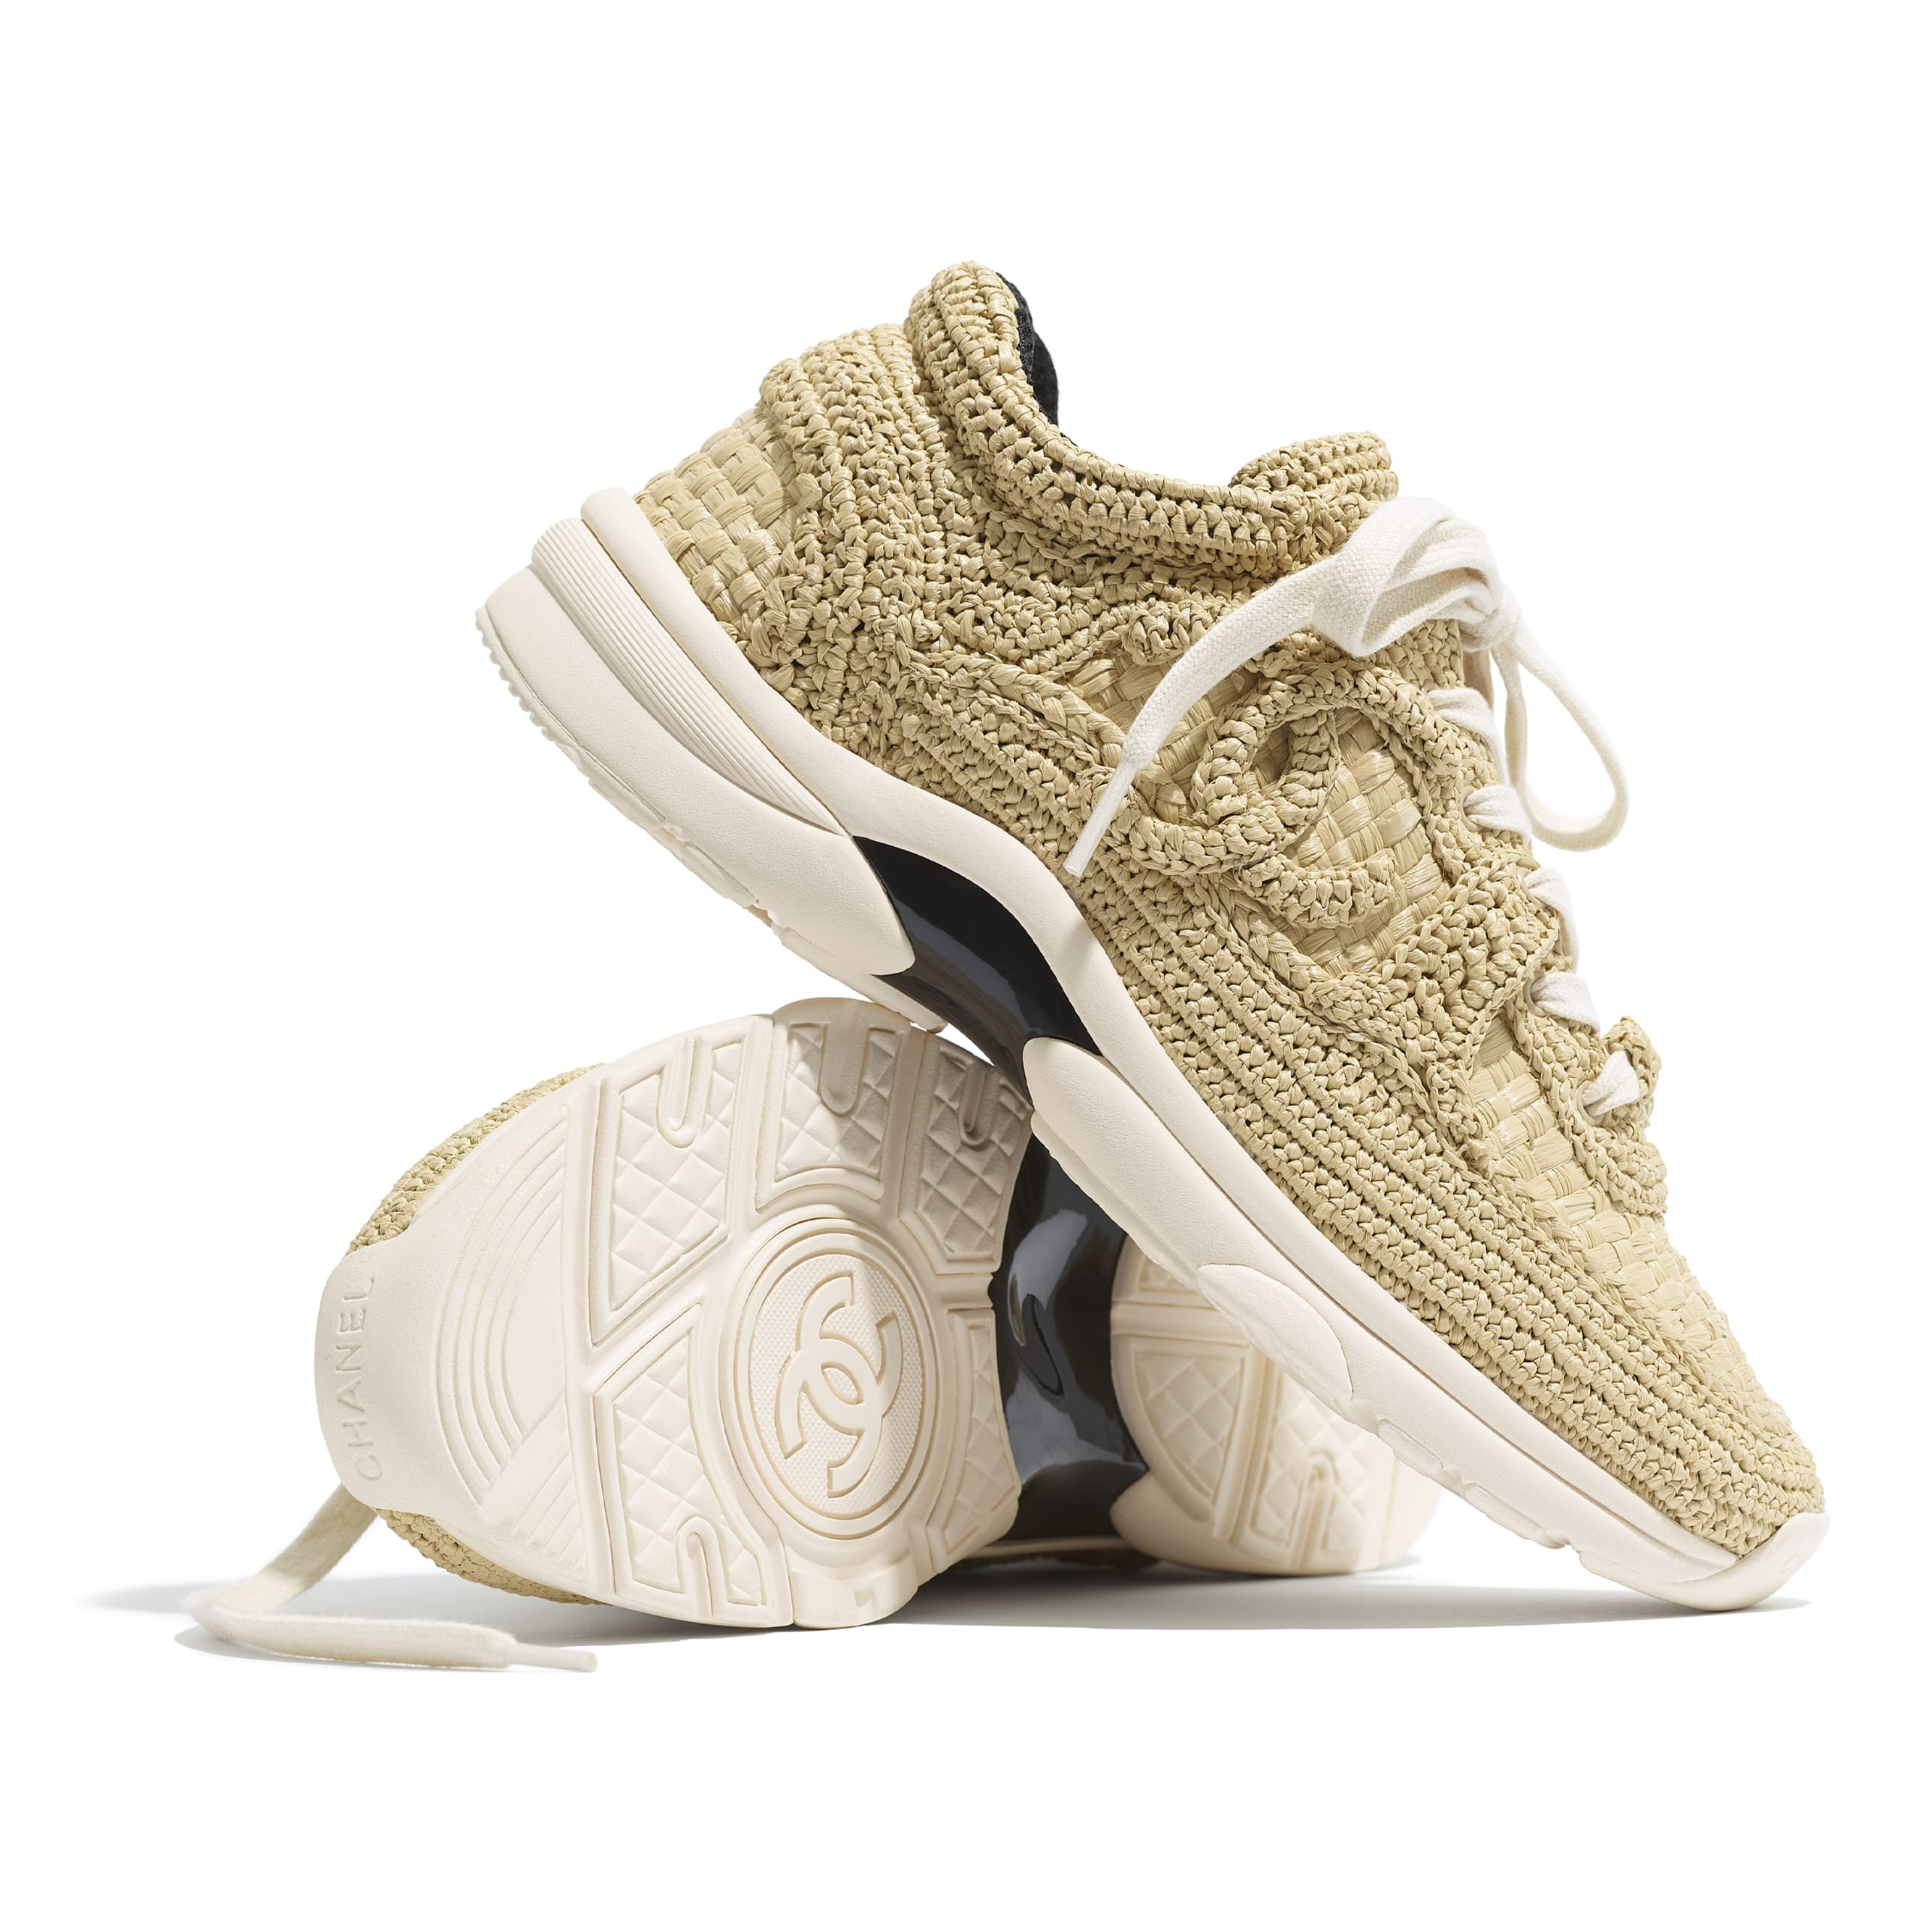 Trainers - Beige - Braided Raffia - CHANEL - Extra view - see standard sized version